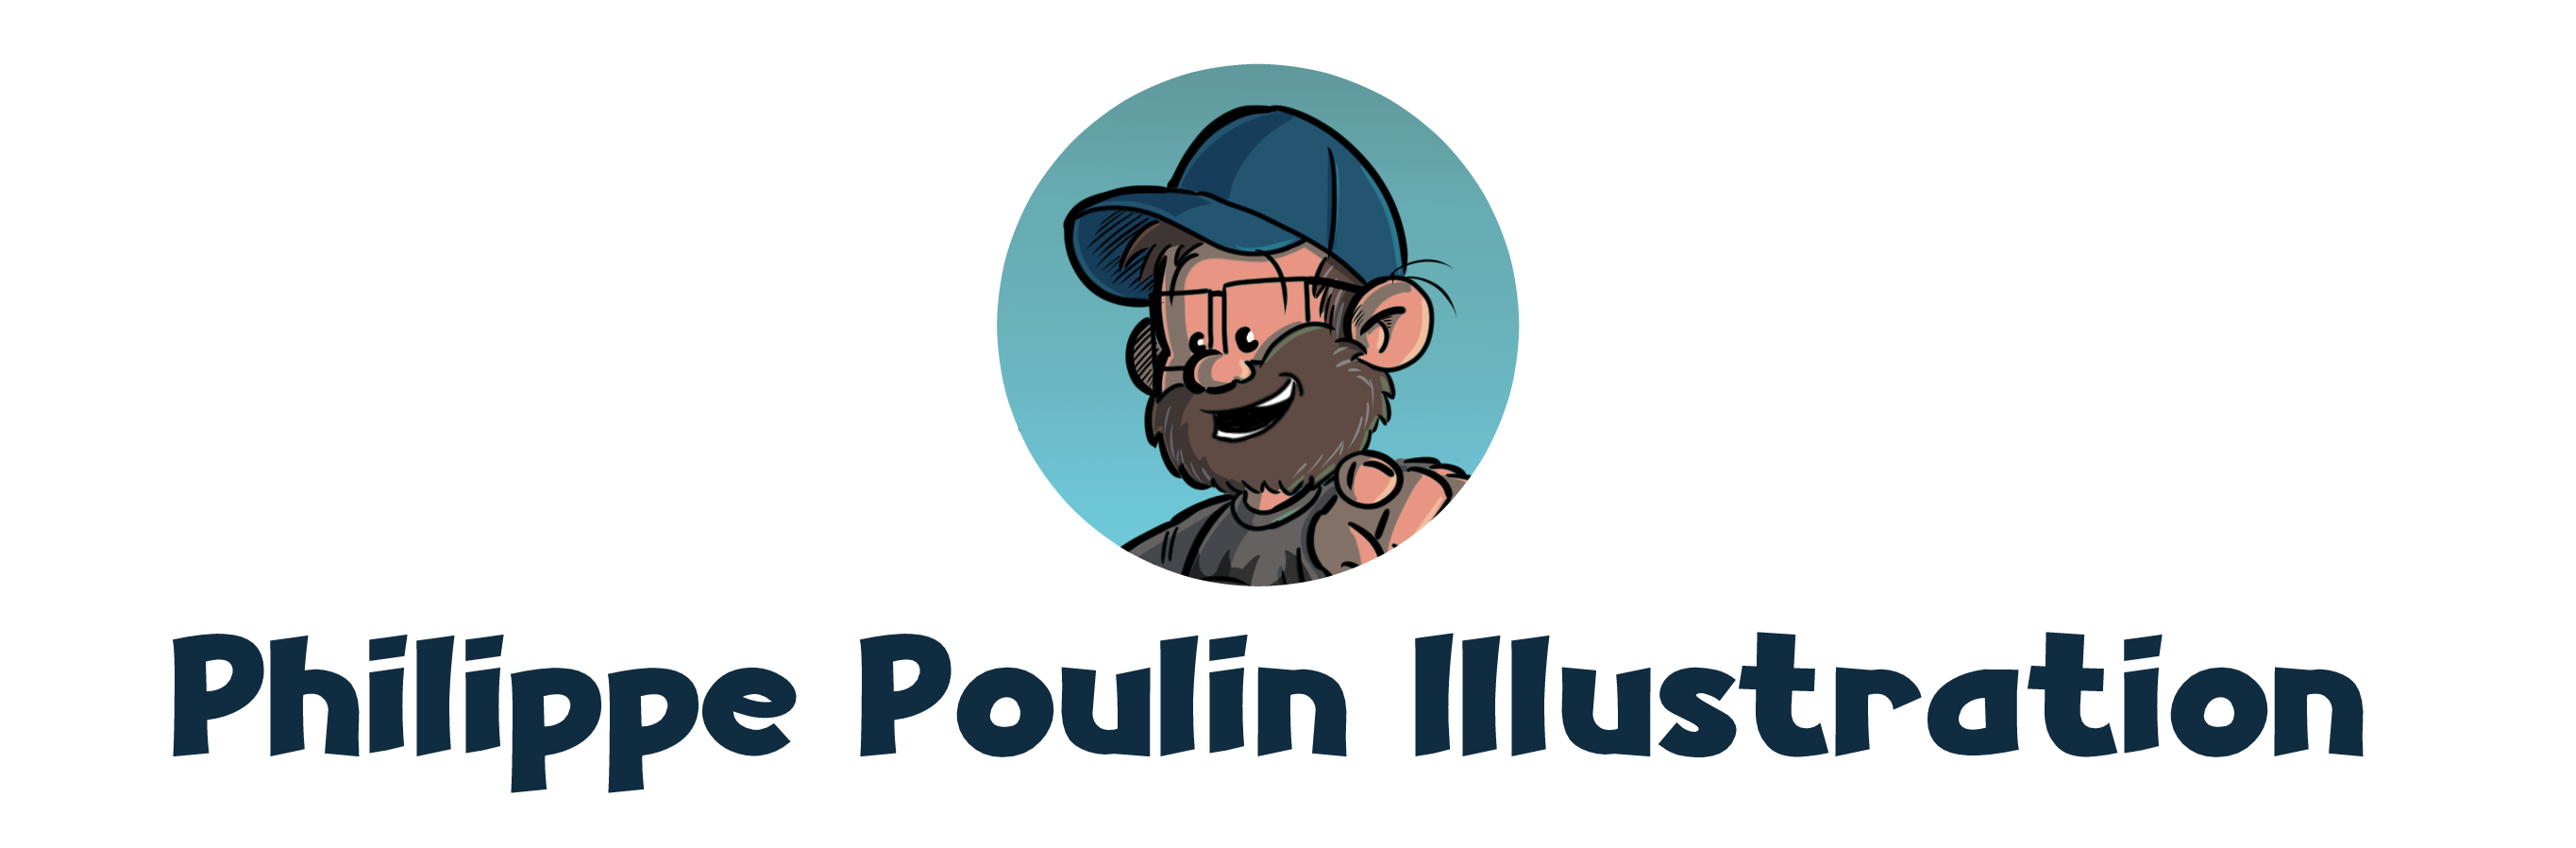 Philippe Poulin